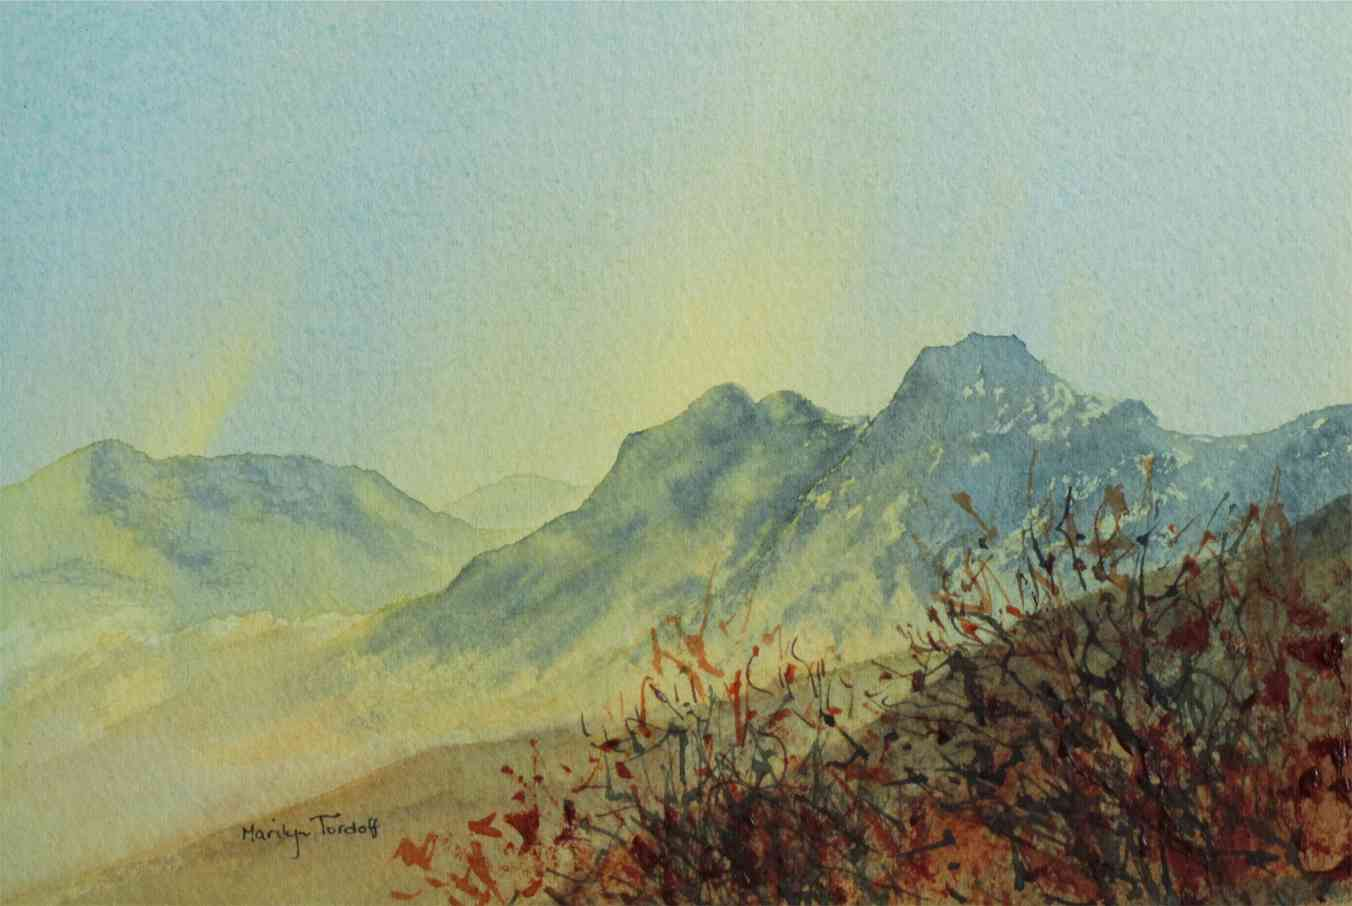 Langdale Pikes and the prickly bush